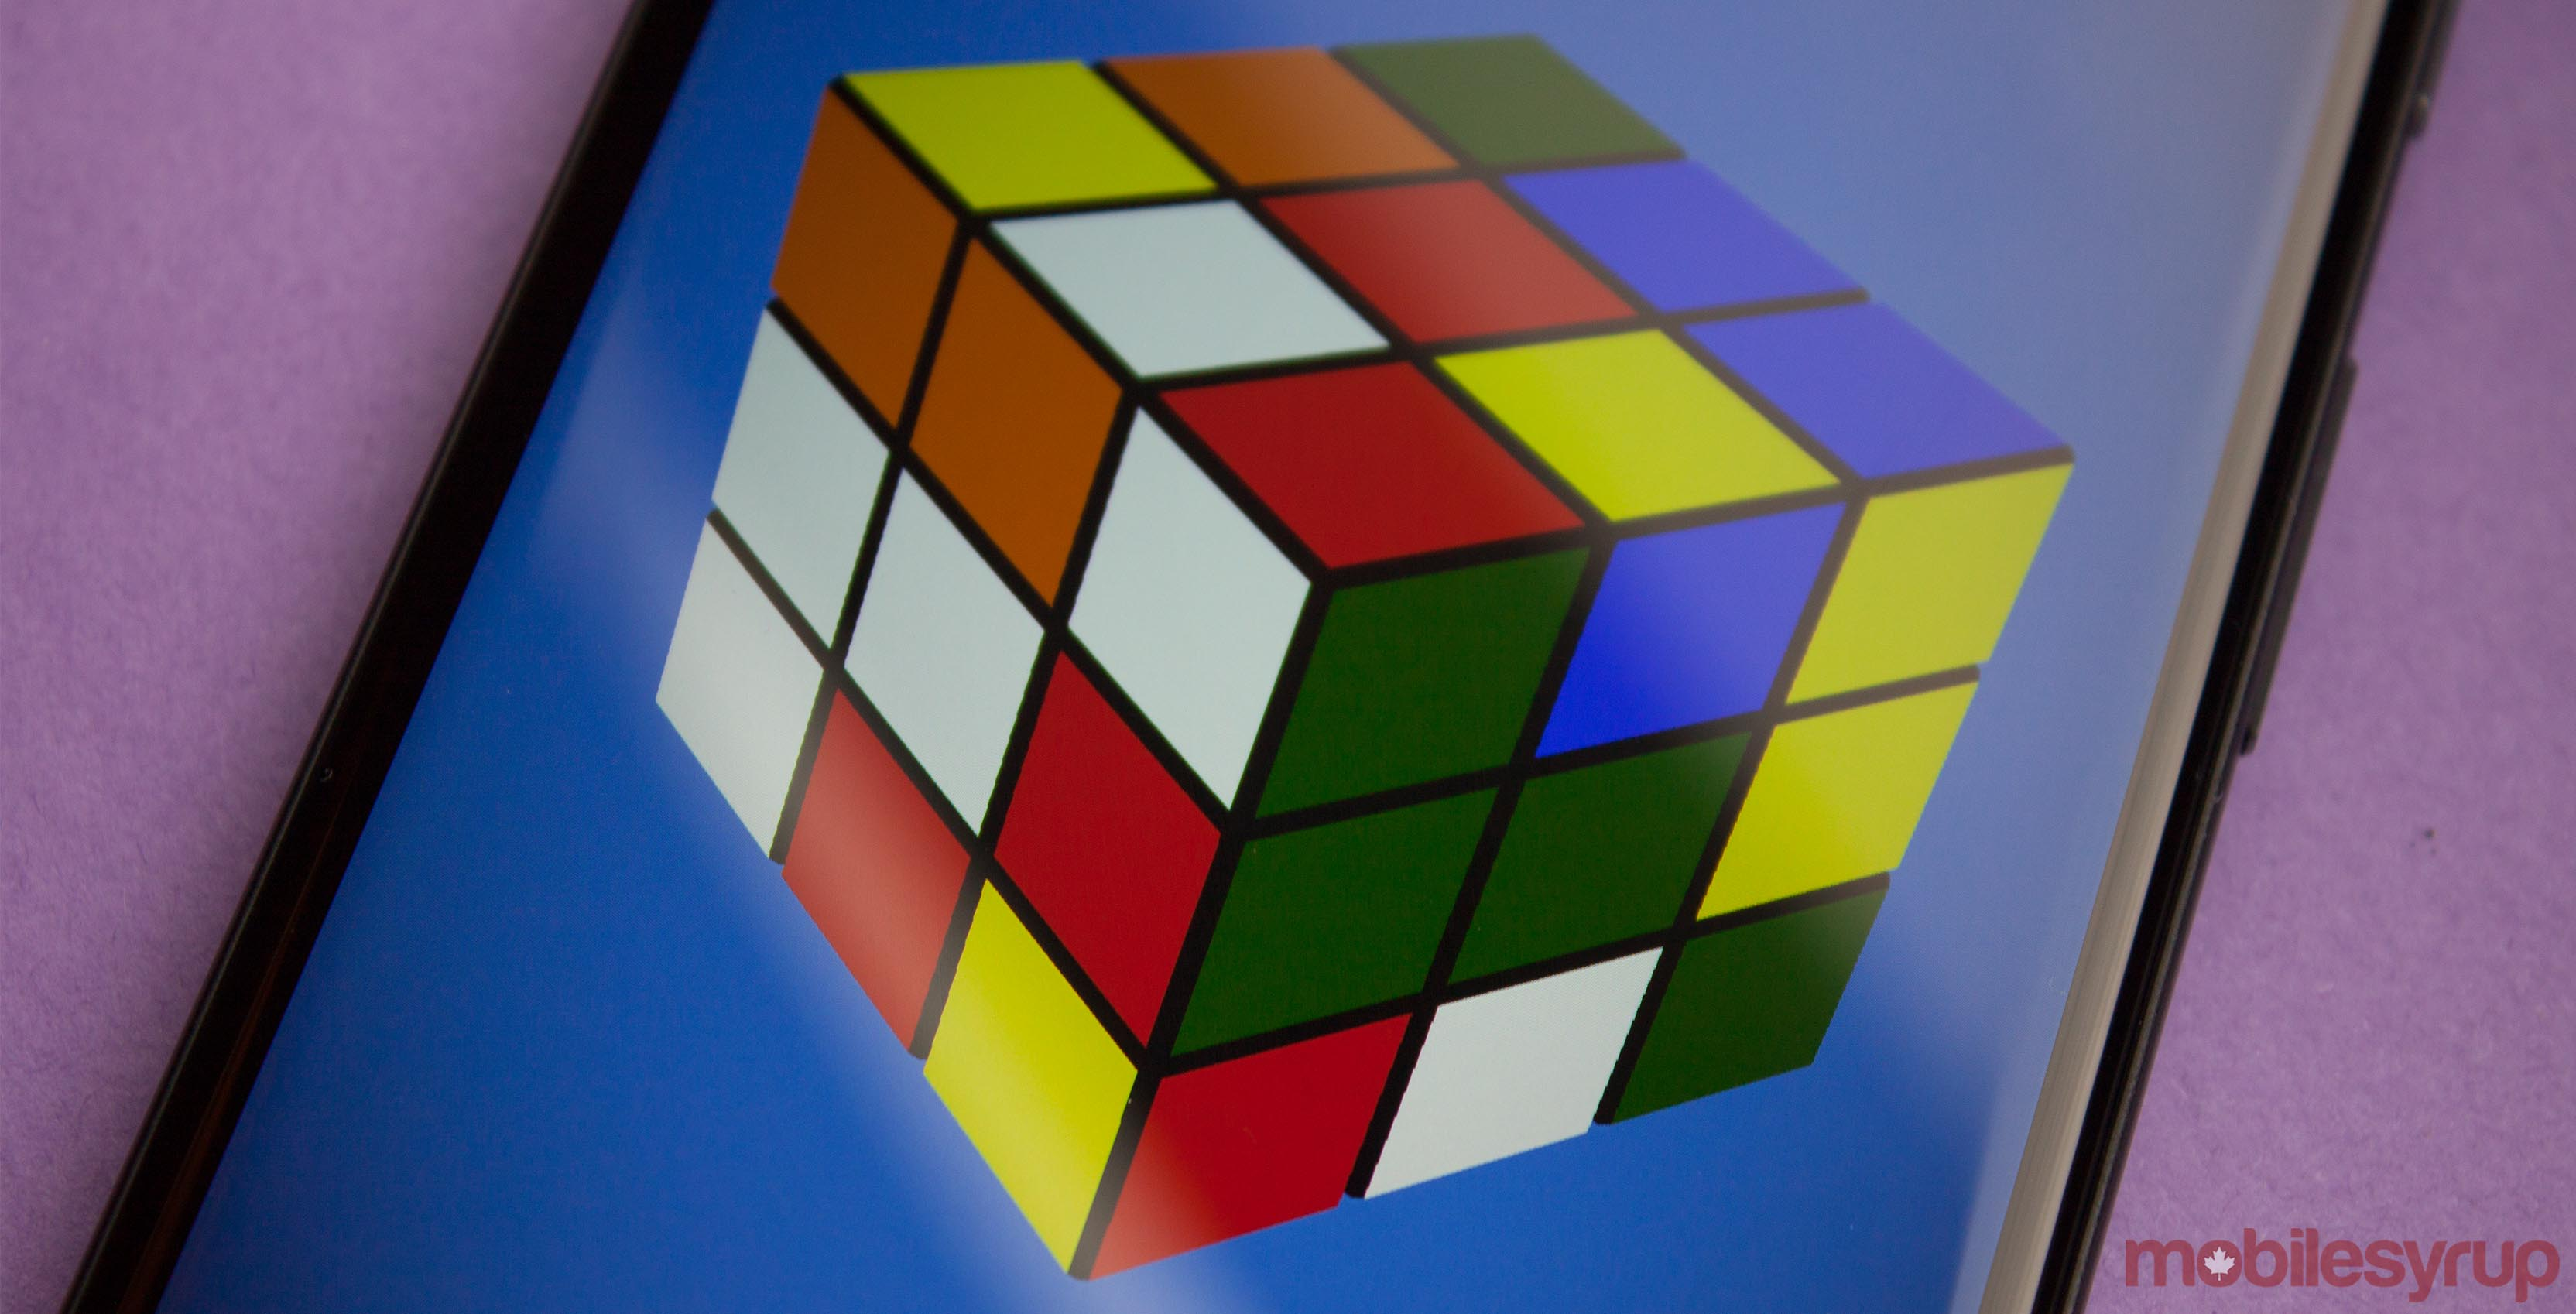 Rubik's Cube app on Android